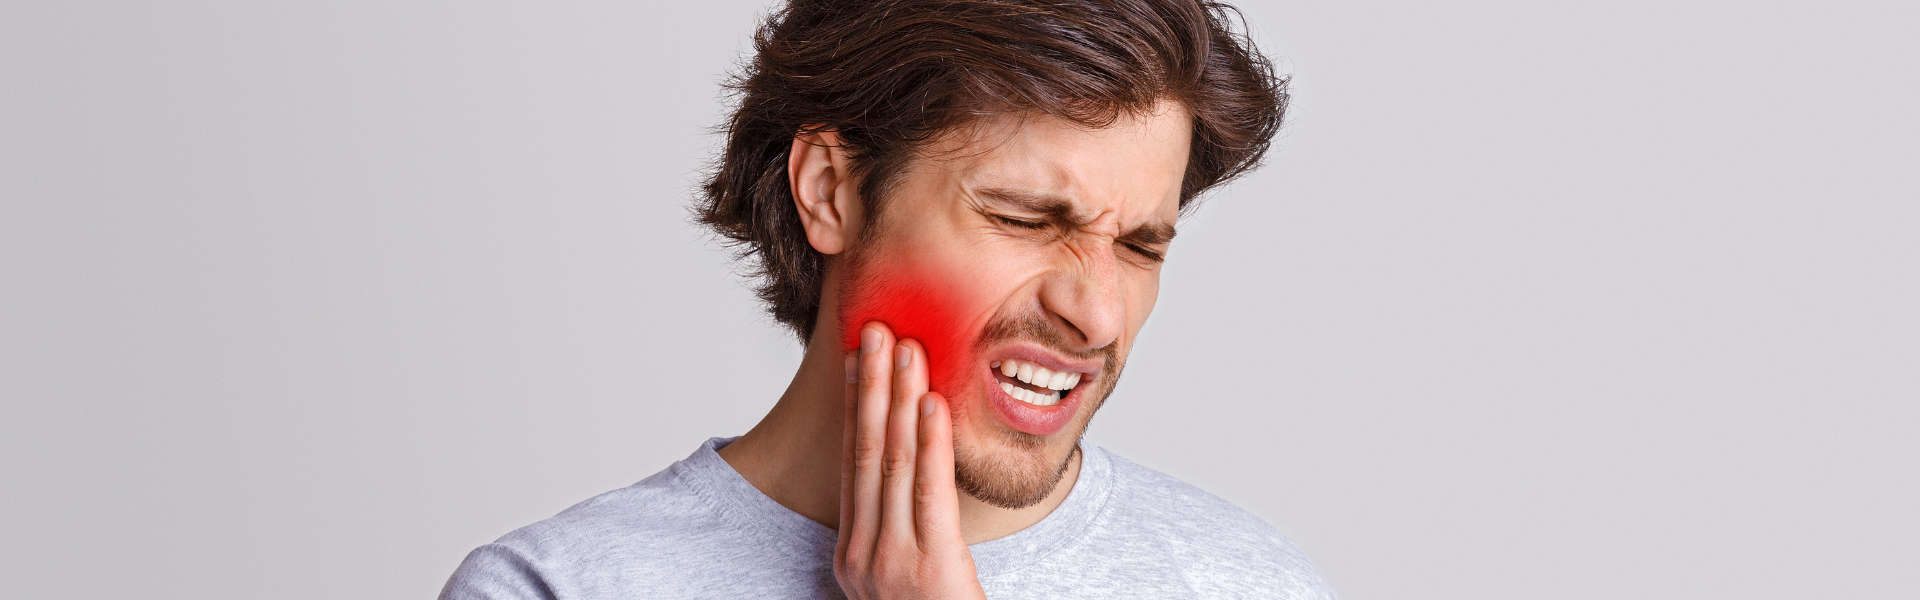 Man suffers from pain in his teeth.